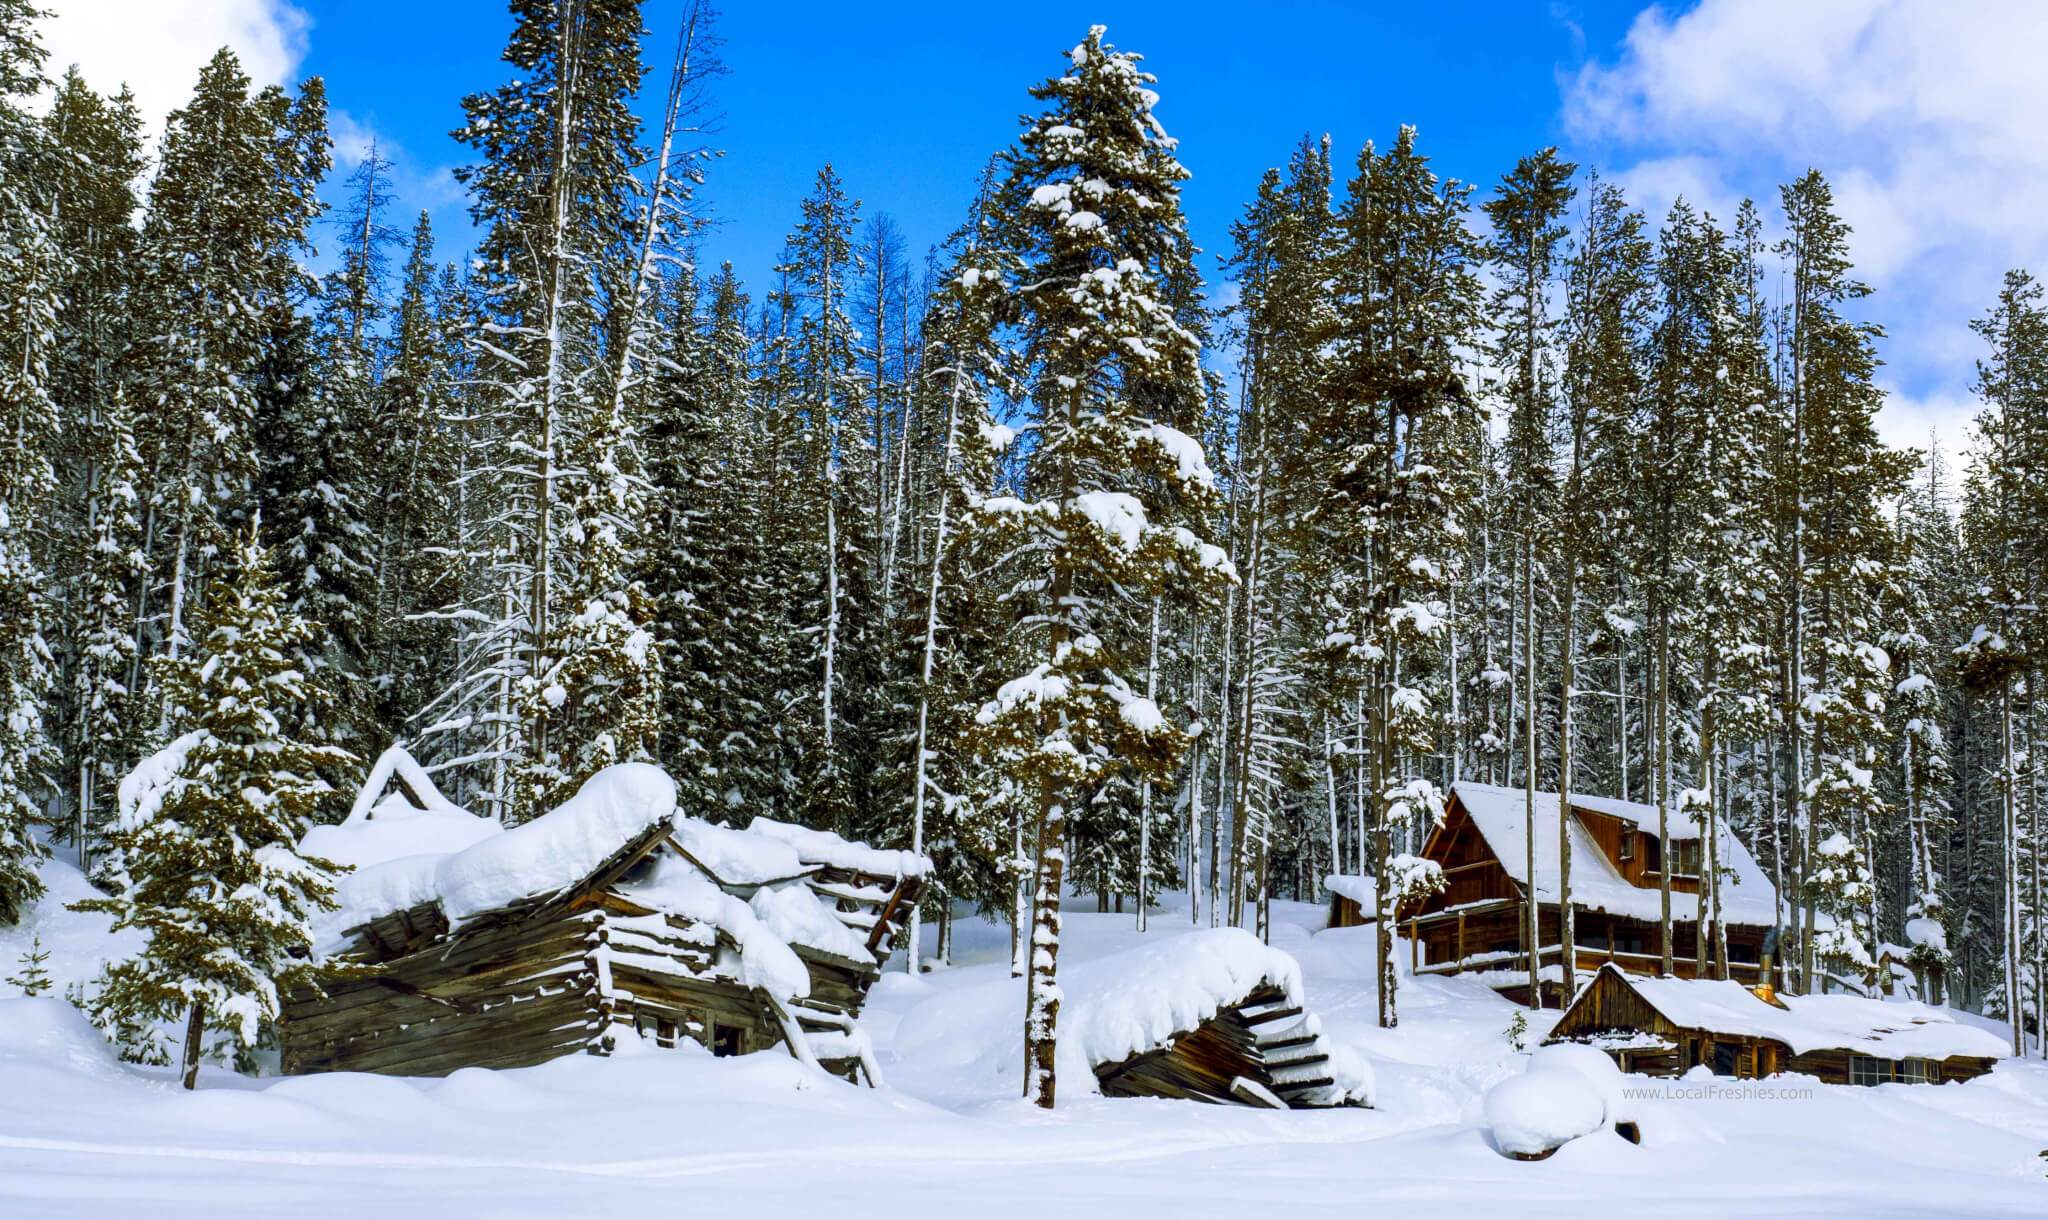 Burgdorf Hot Springs in the Payette National Forest near Brundage Resort by McCall Idaho